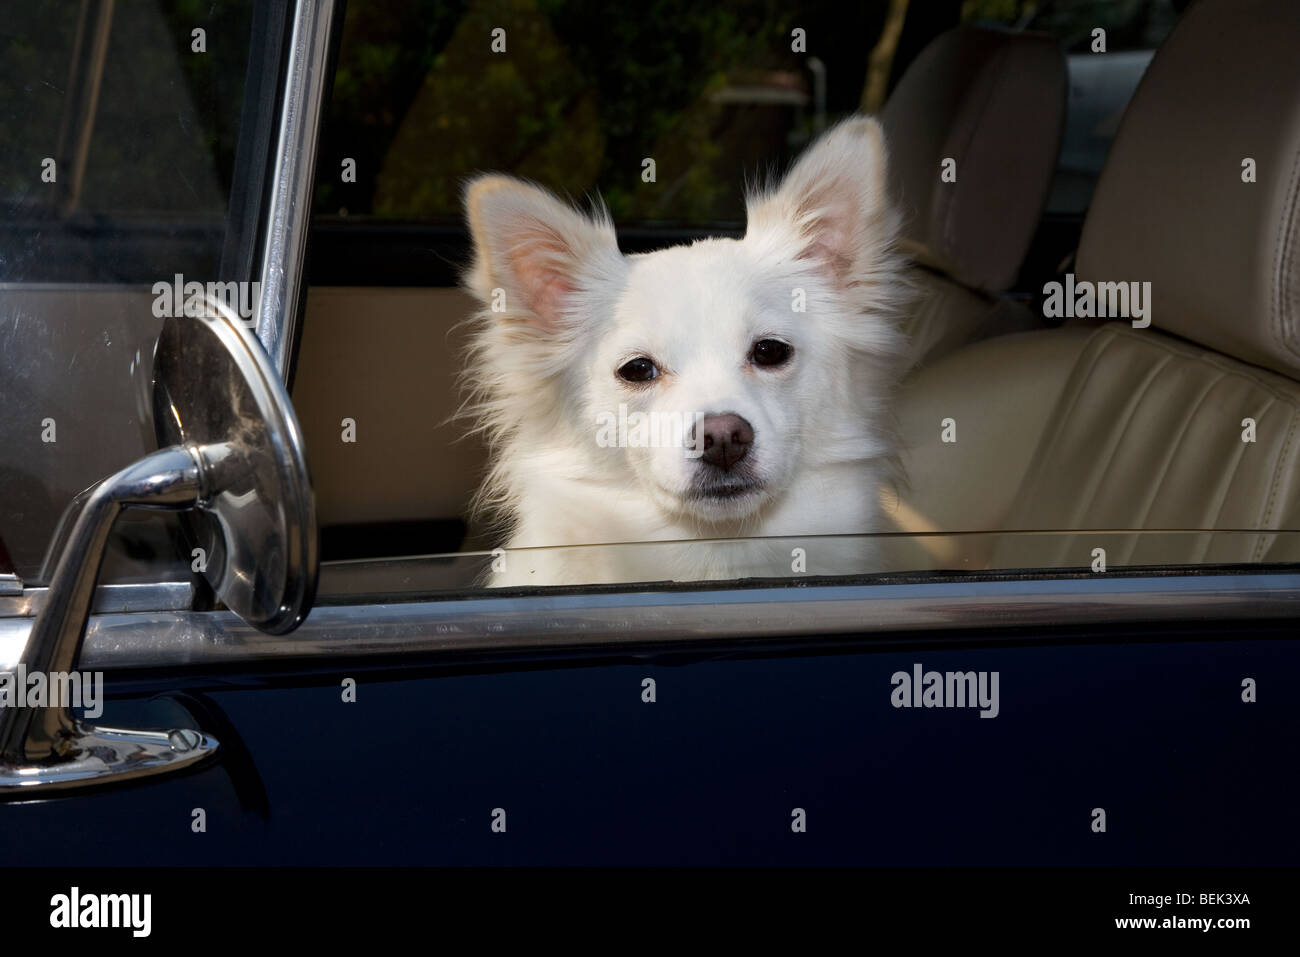 Curious white mongrel dog looking through car window - Stock Image